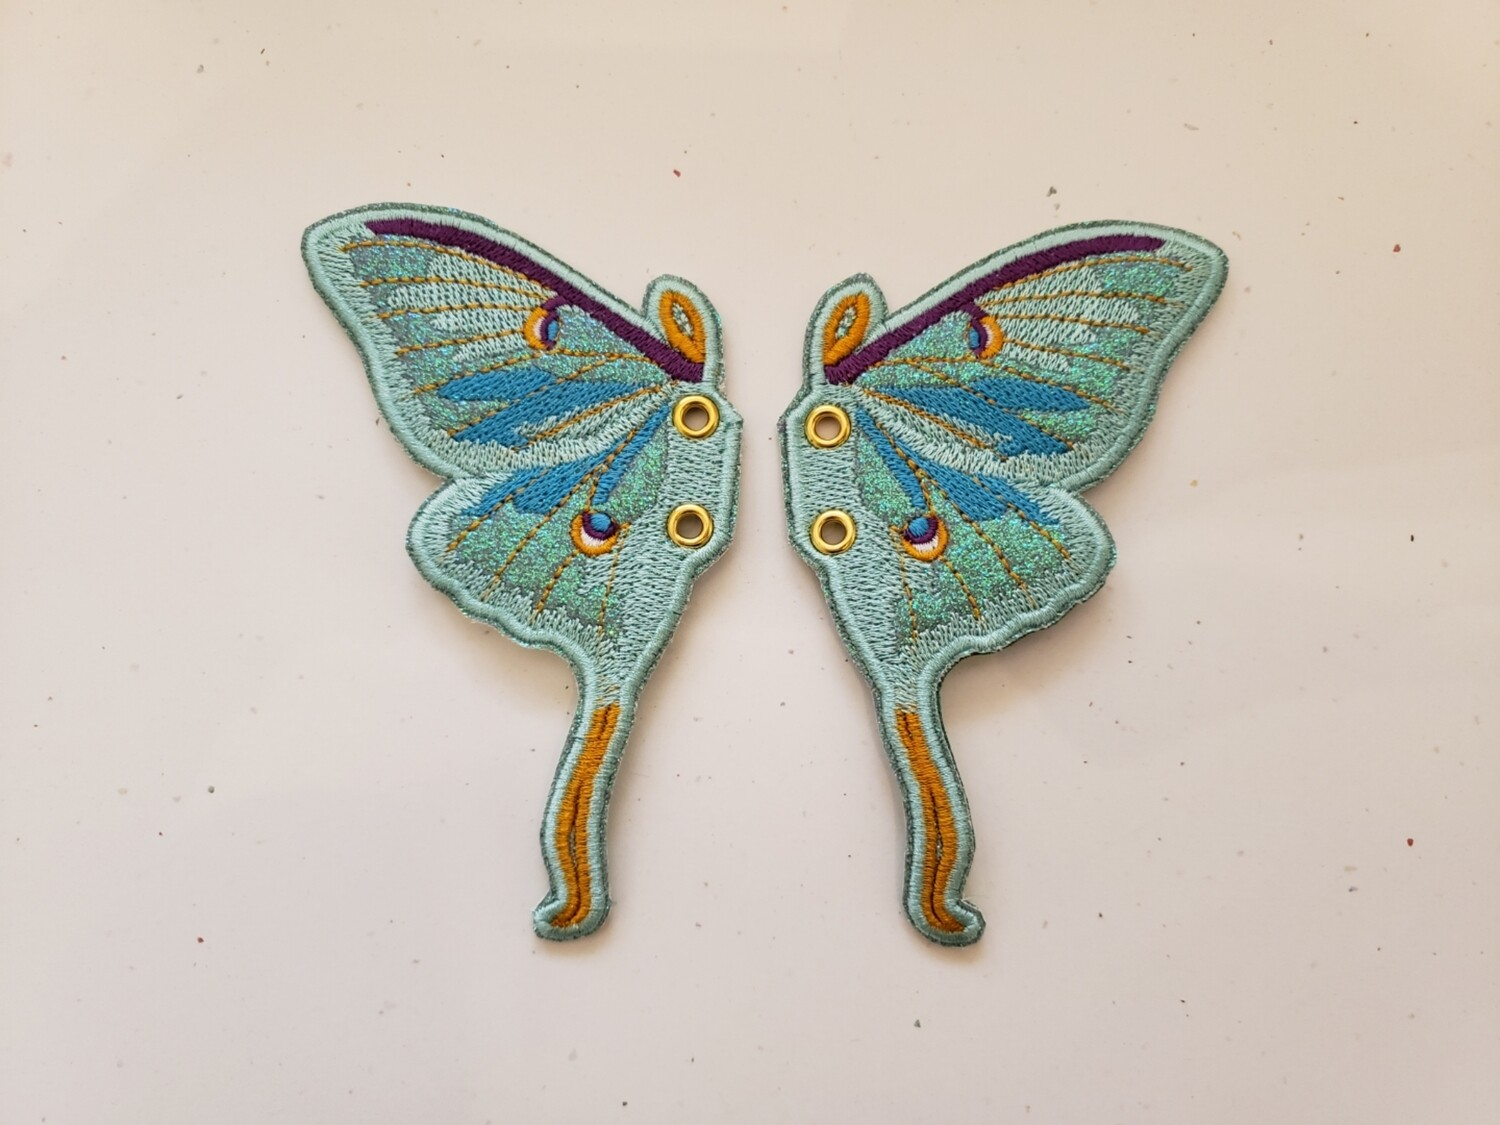 Luna Moth shoe/skate wings